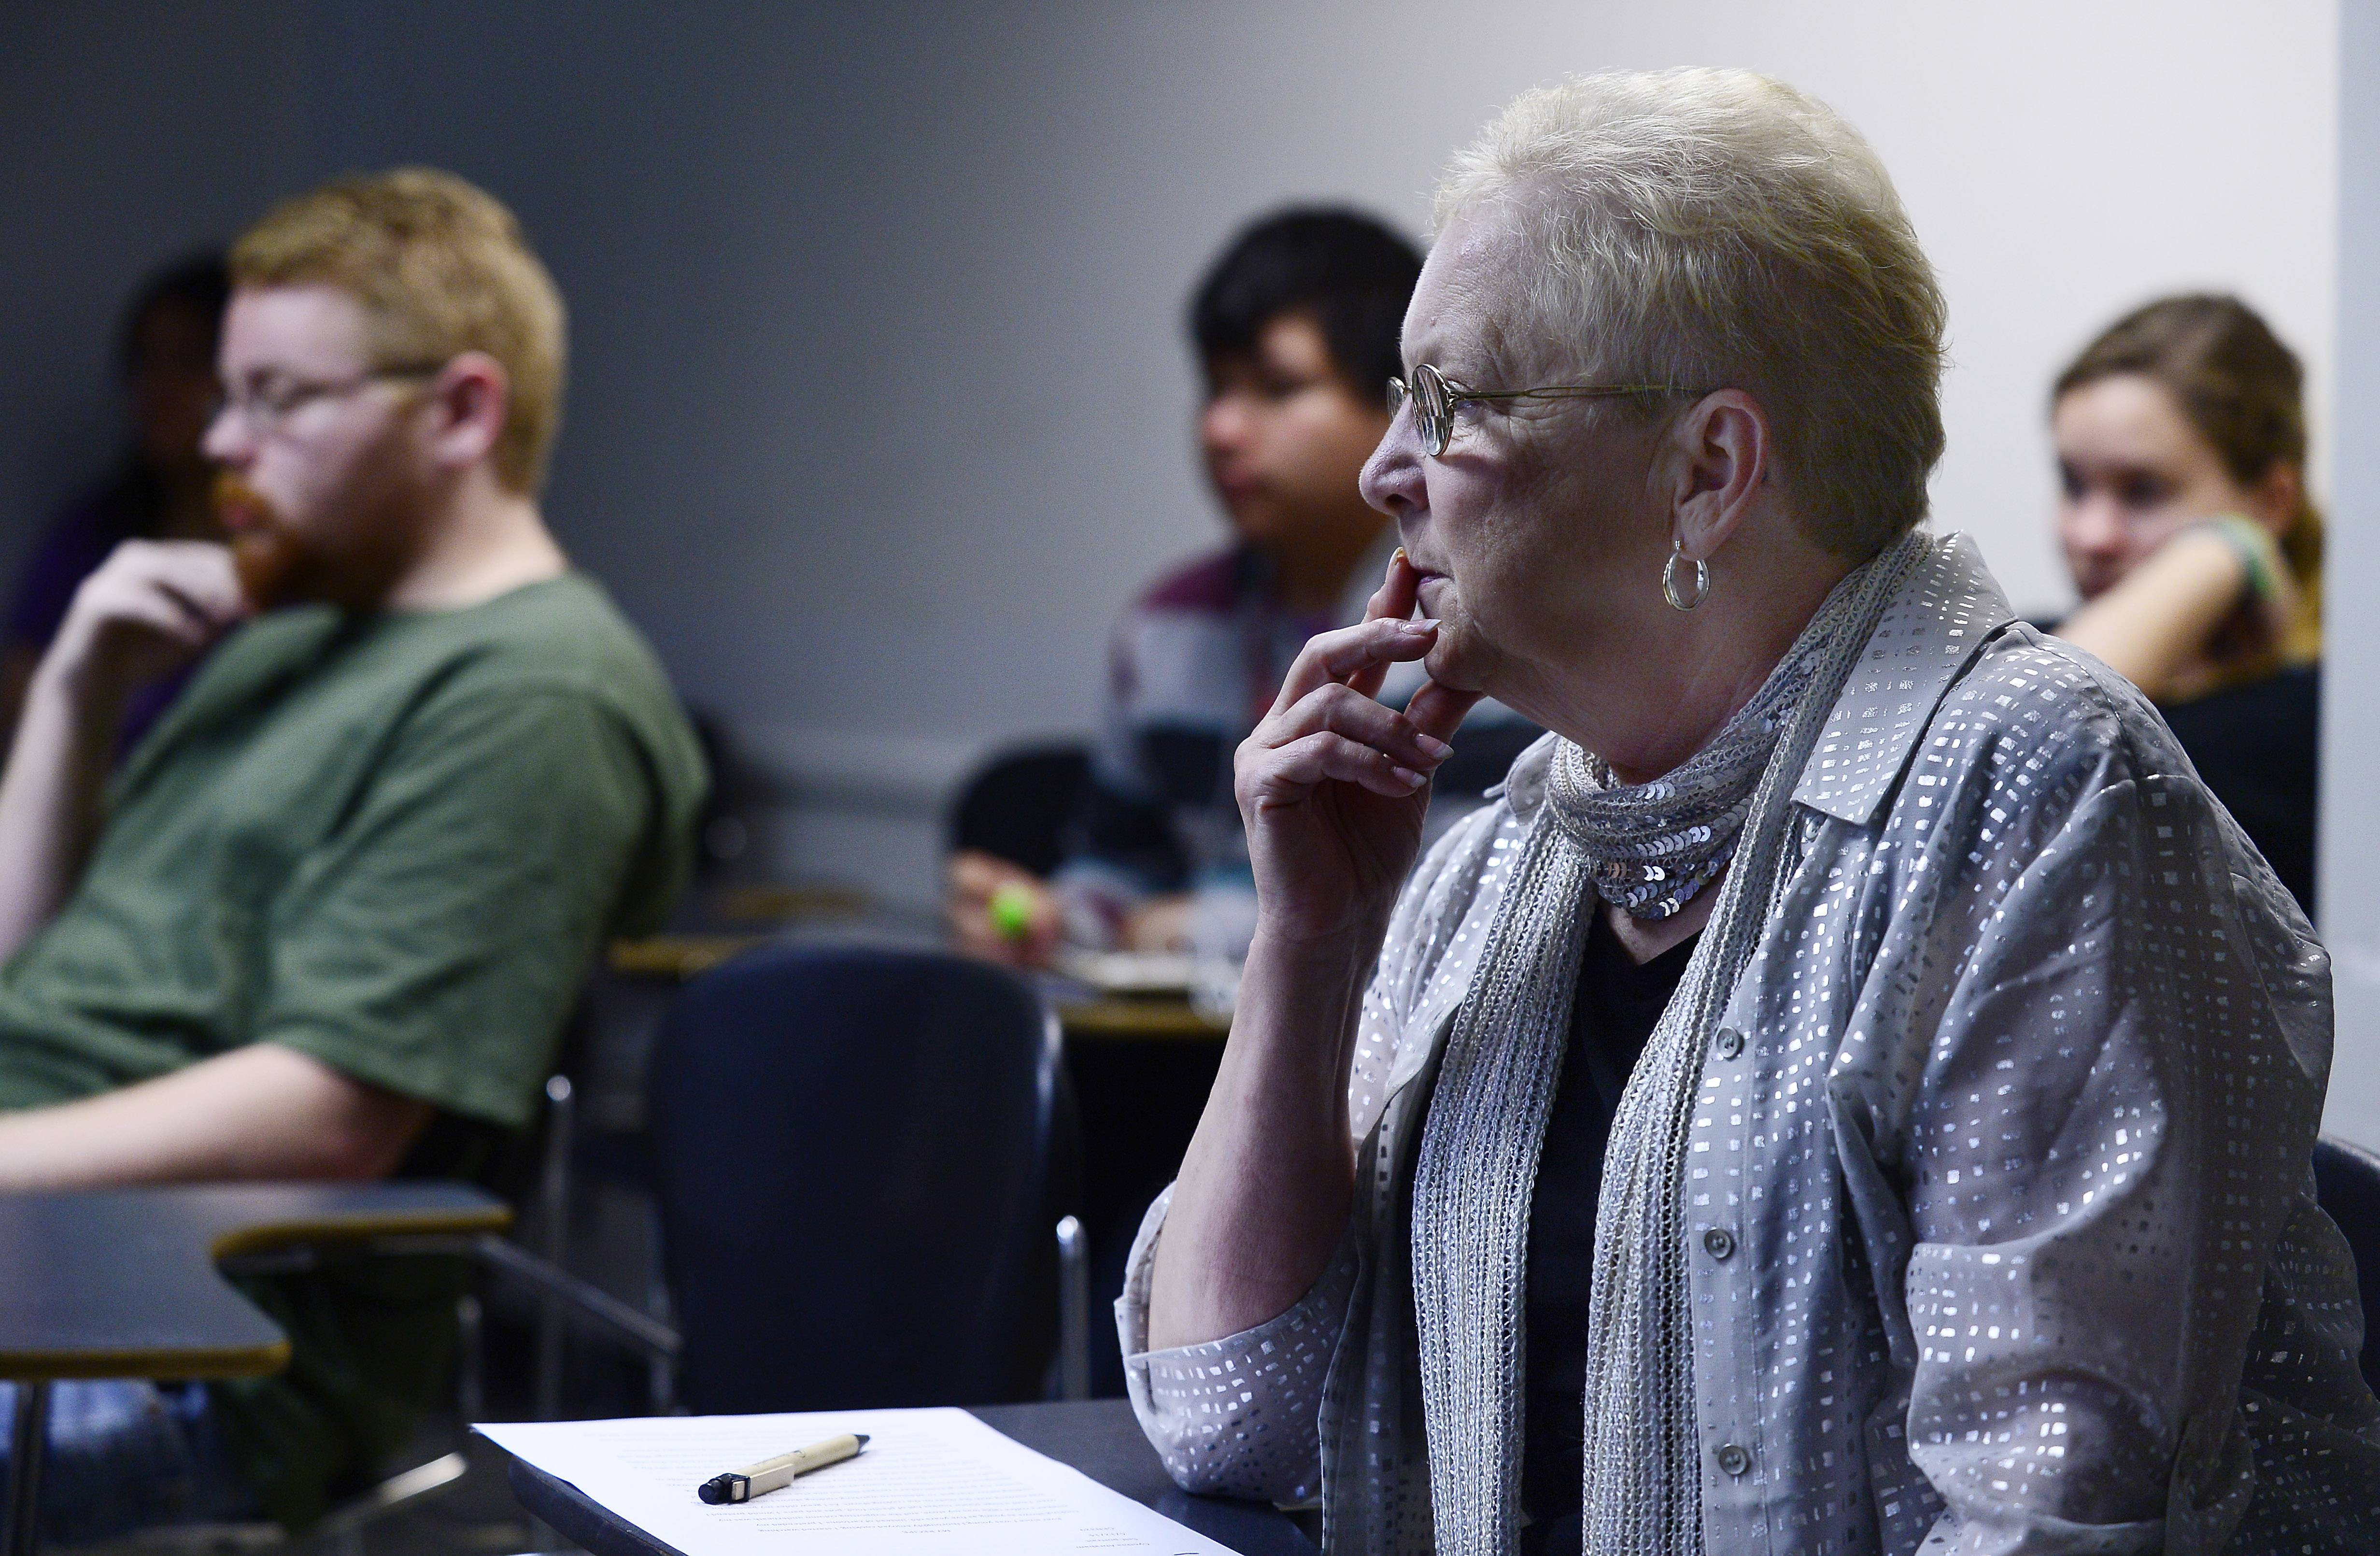 Teacher Diane Kostick of the Illinois Institute of Art in Schaumburg, and formerly of Barrington Unit District 220, is celebrating 50 years of continuous teaching this month. Here she looks on as her humanities students present their final projects of the school year.